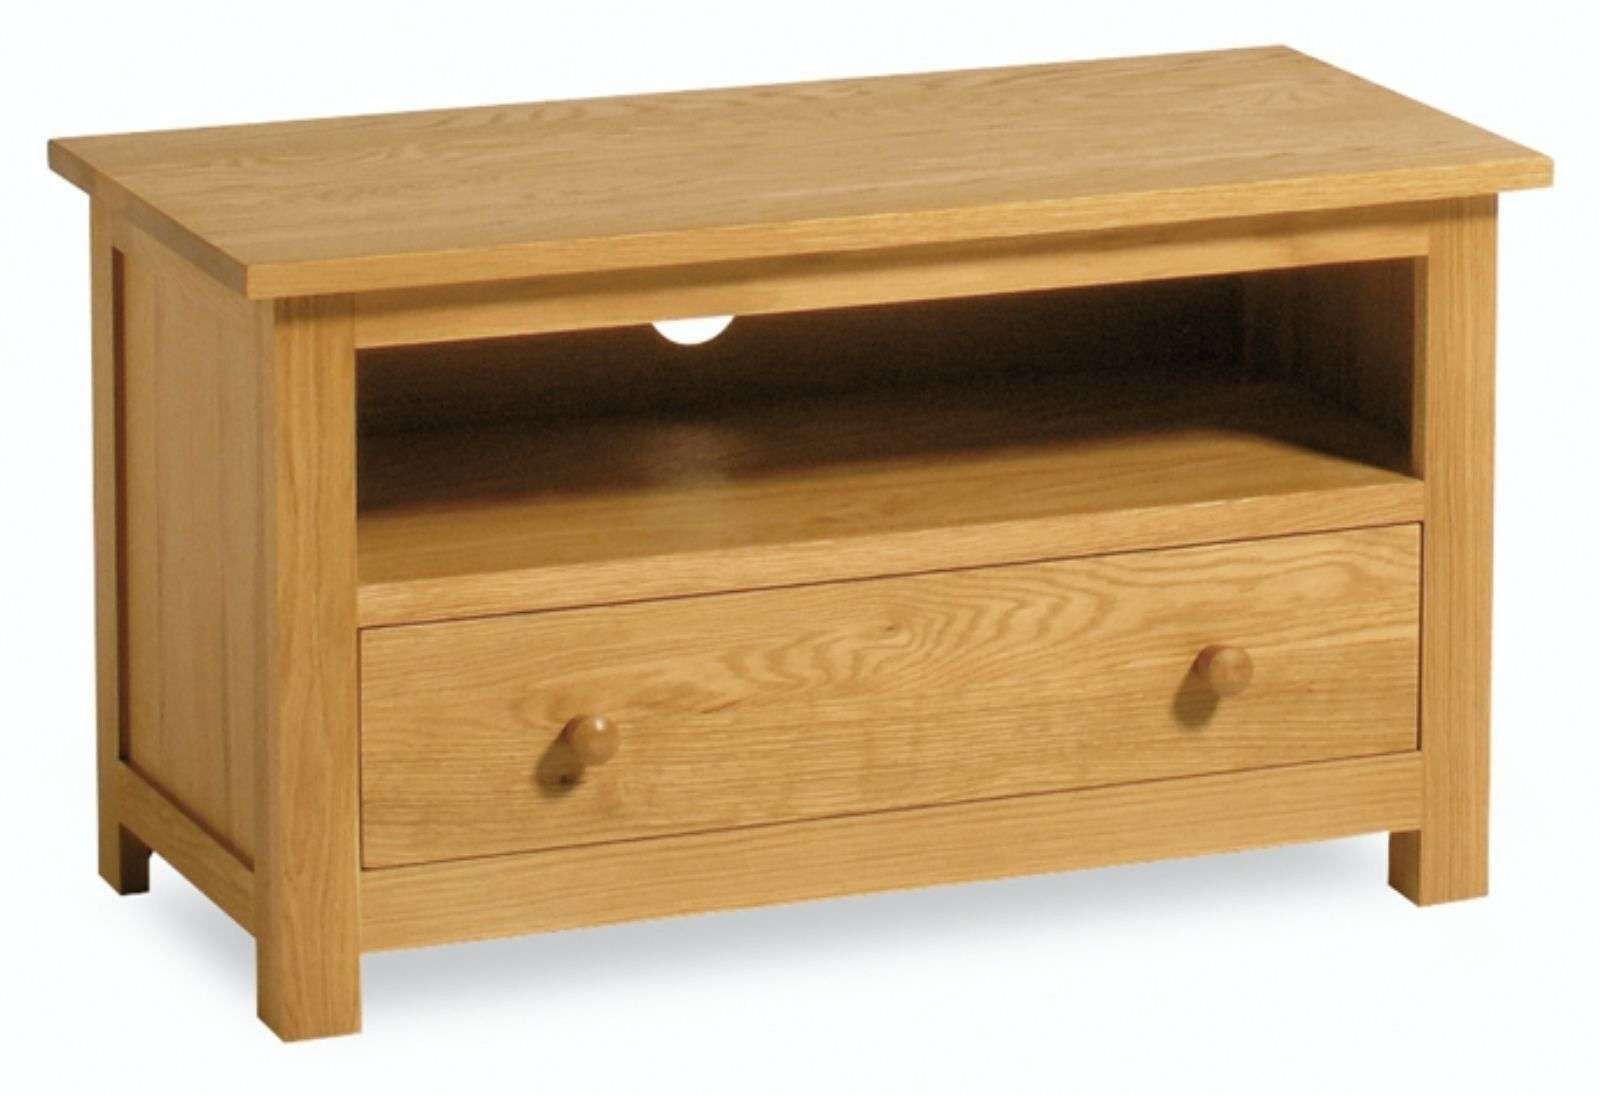 Penrose Oak Small Tv Stand / Modern Light Oak Tv Unit / Solid Wood Pertaining To Contemporary Oak Tv Cabinets (View 17 of 20)